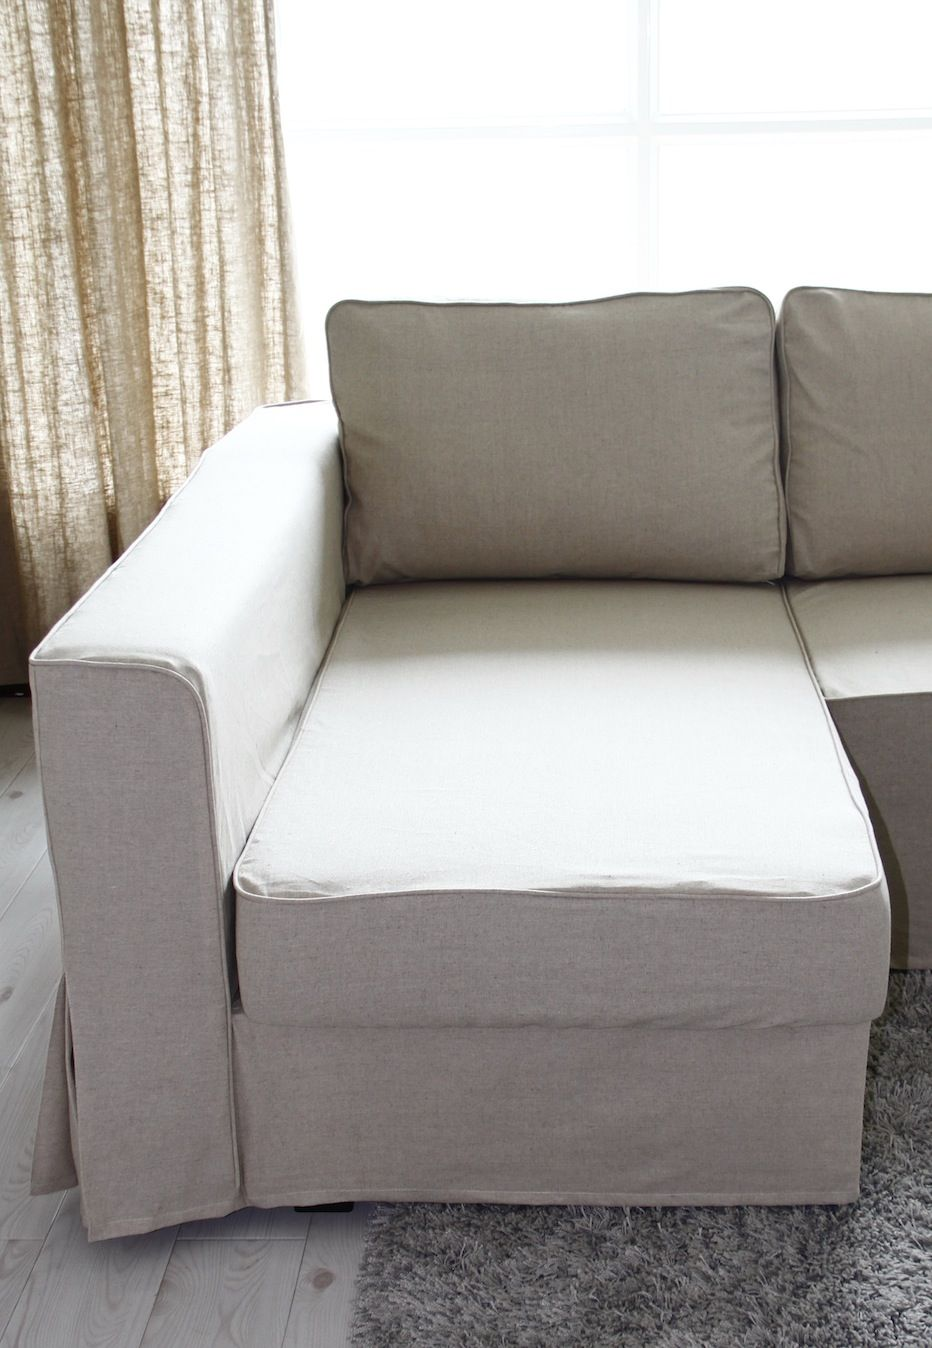 Great Loose Fit Linen Manstad Sofa Slipcovers Now Available